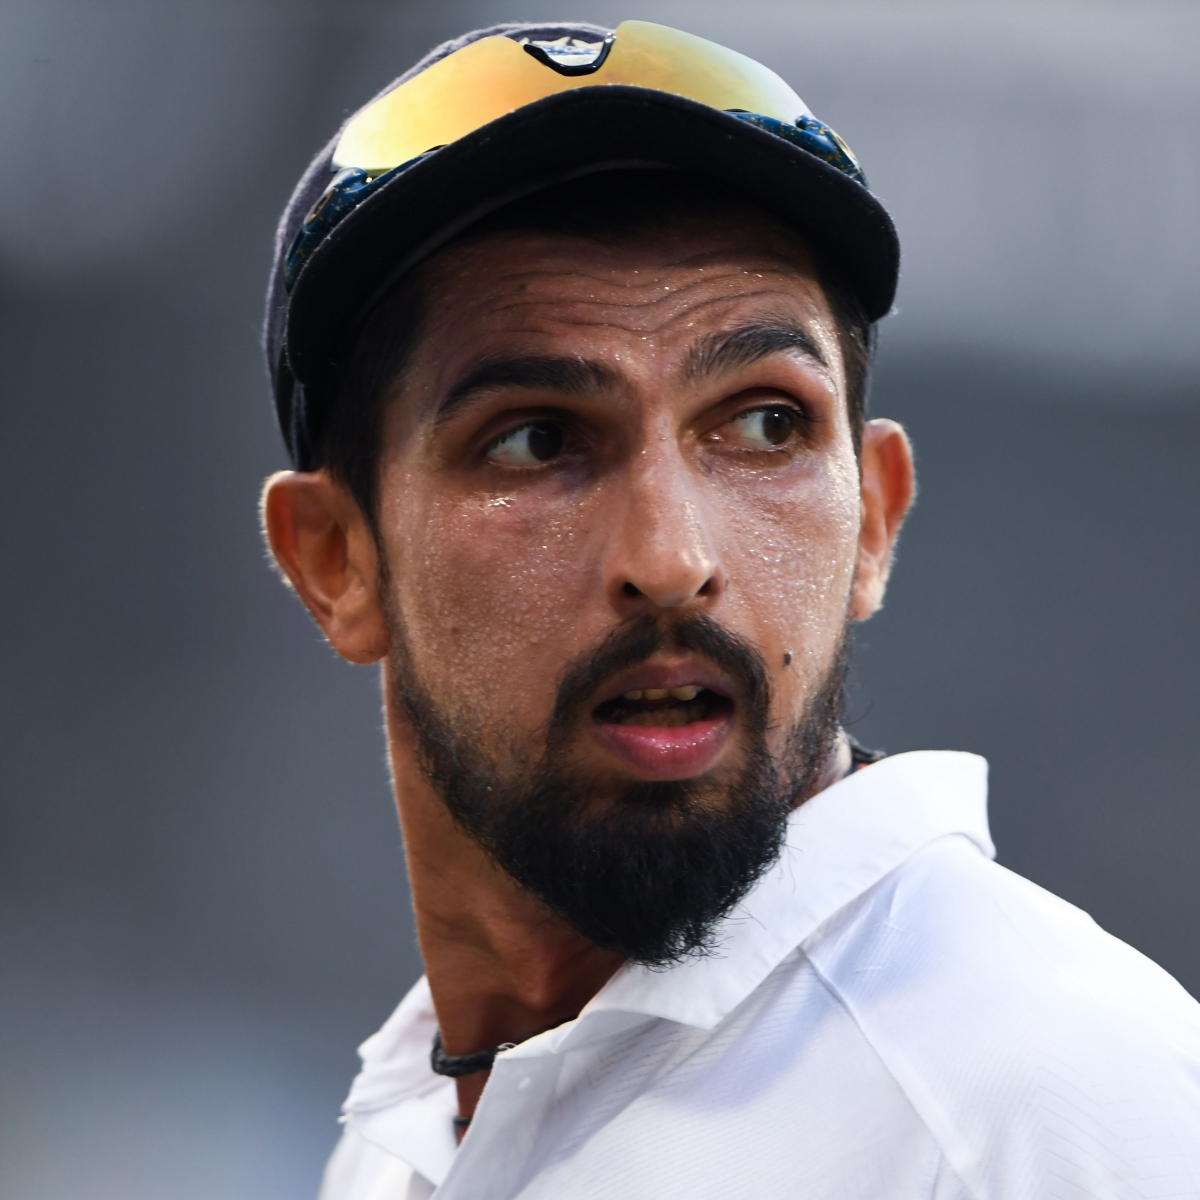 NZ vs IND: Ishant Sharma suffers from ankle injury, likely to miss 2nd Test